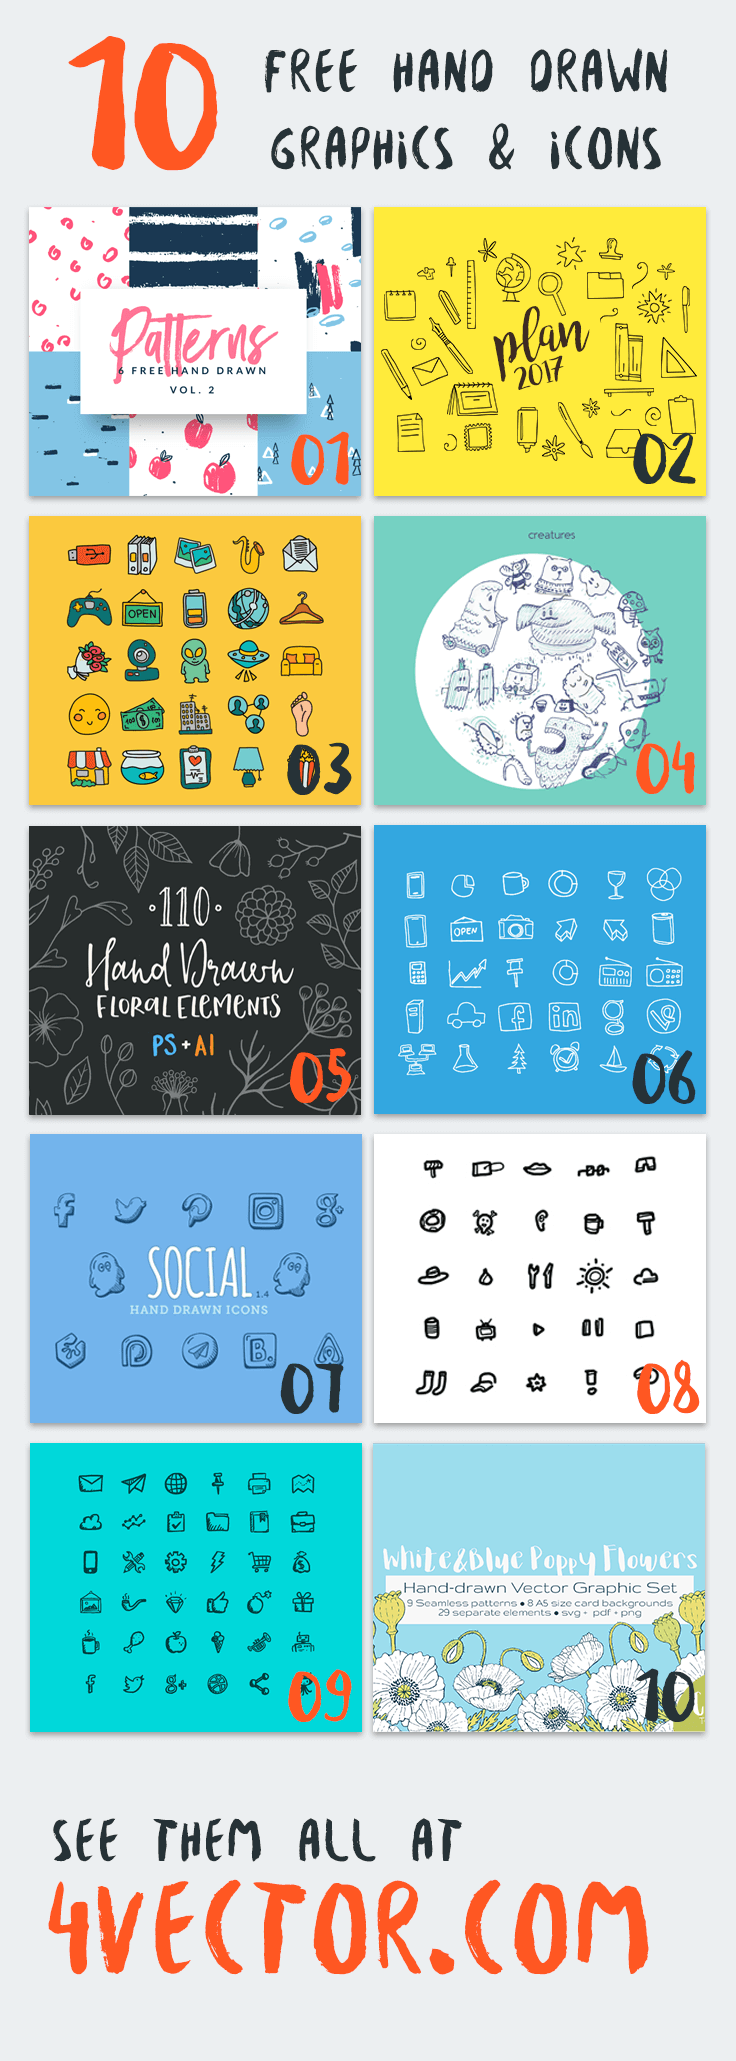 10 Attention-Grabbing Vector Graphics & Icons to Download for Free Right Now!